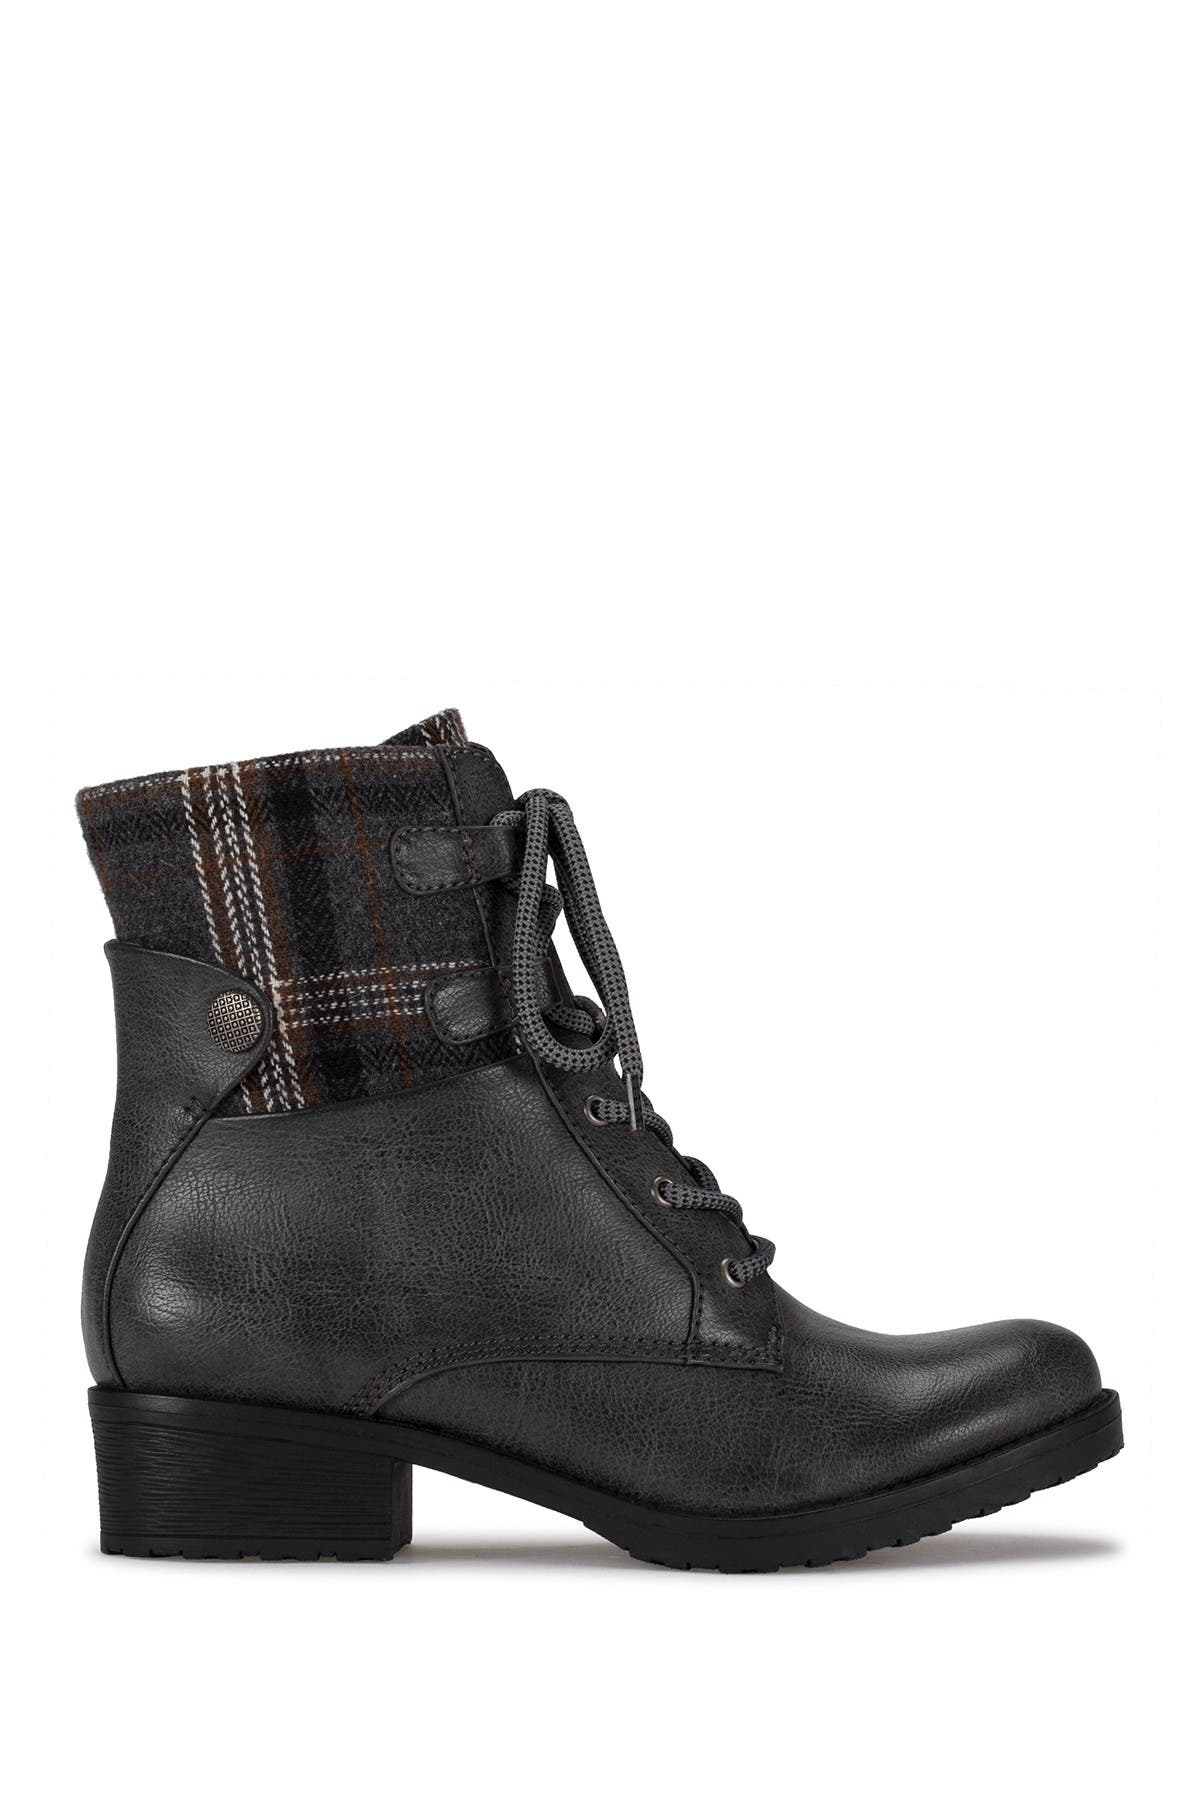 Image of BareTraps O'Neil Lace-Up Boot